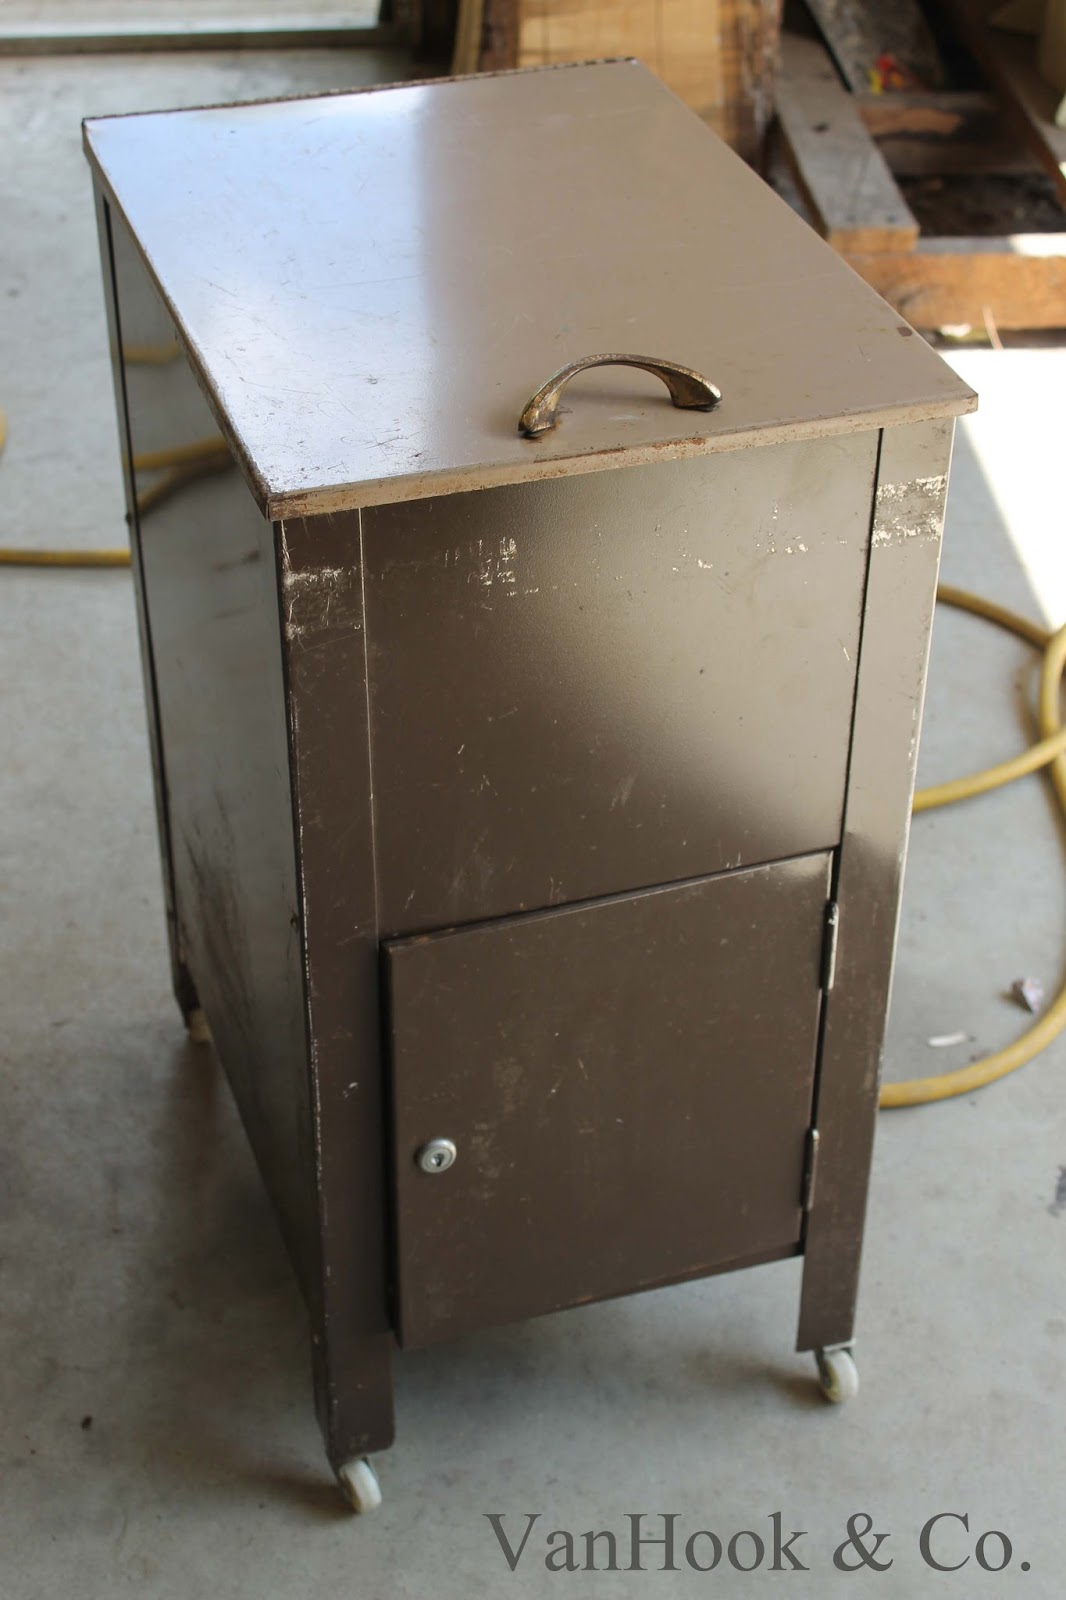 VanHook & Co.: Metal File Cabinet Repurposed